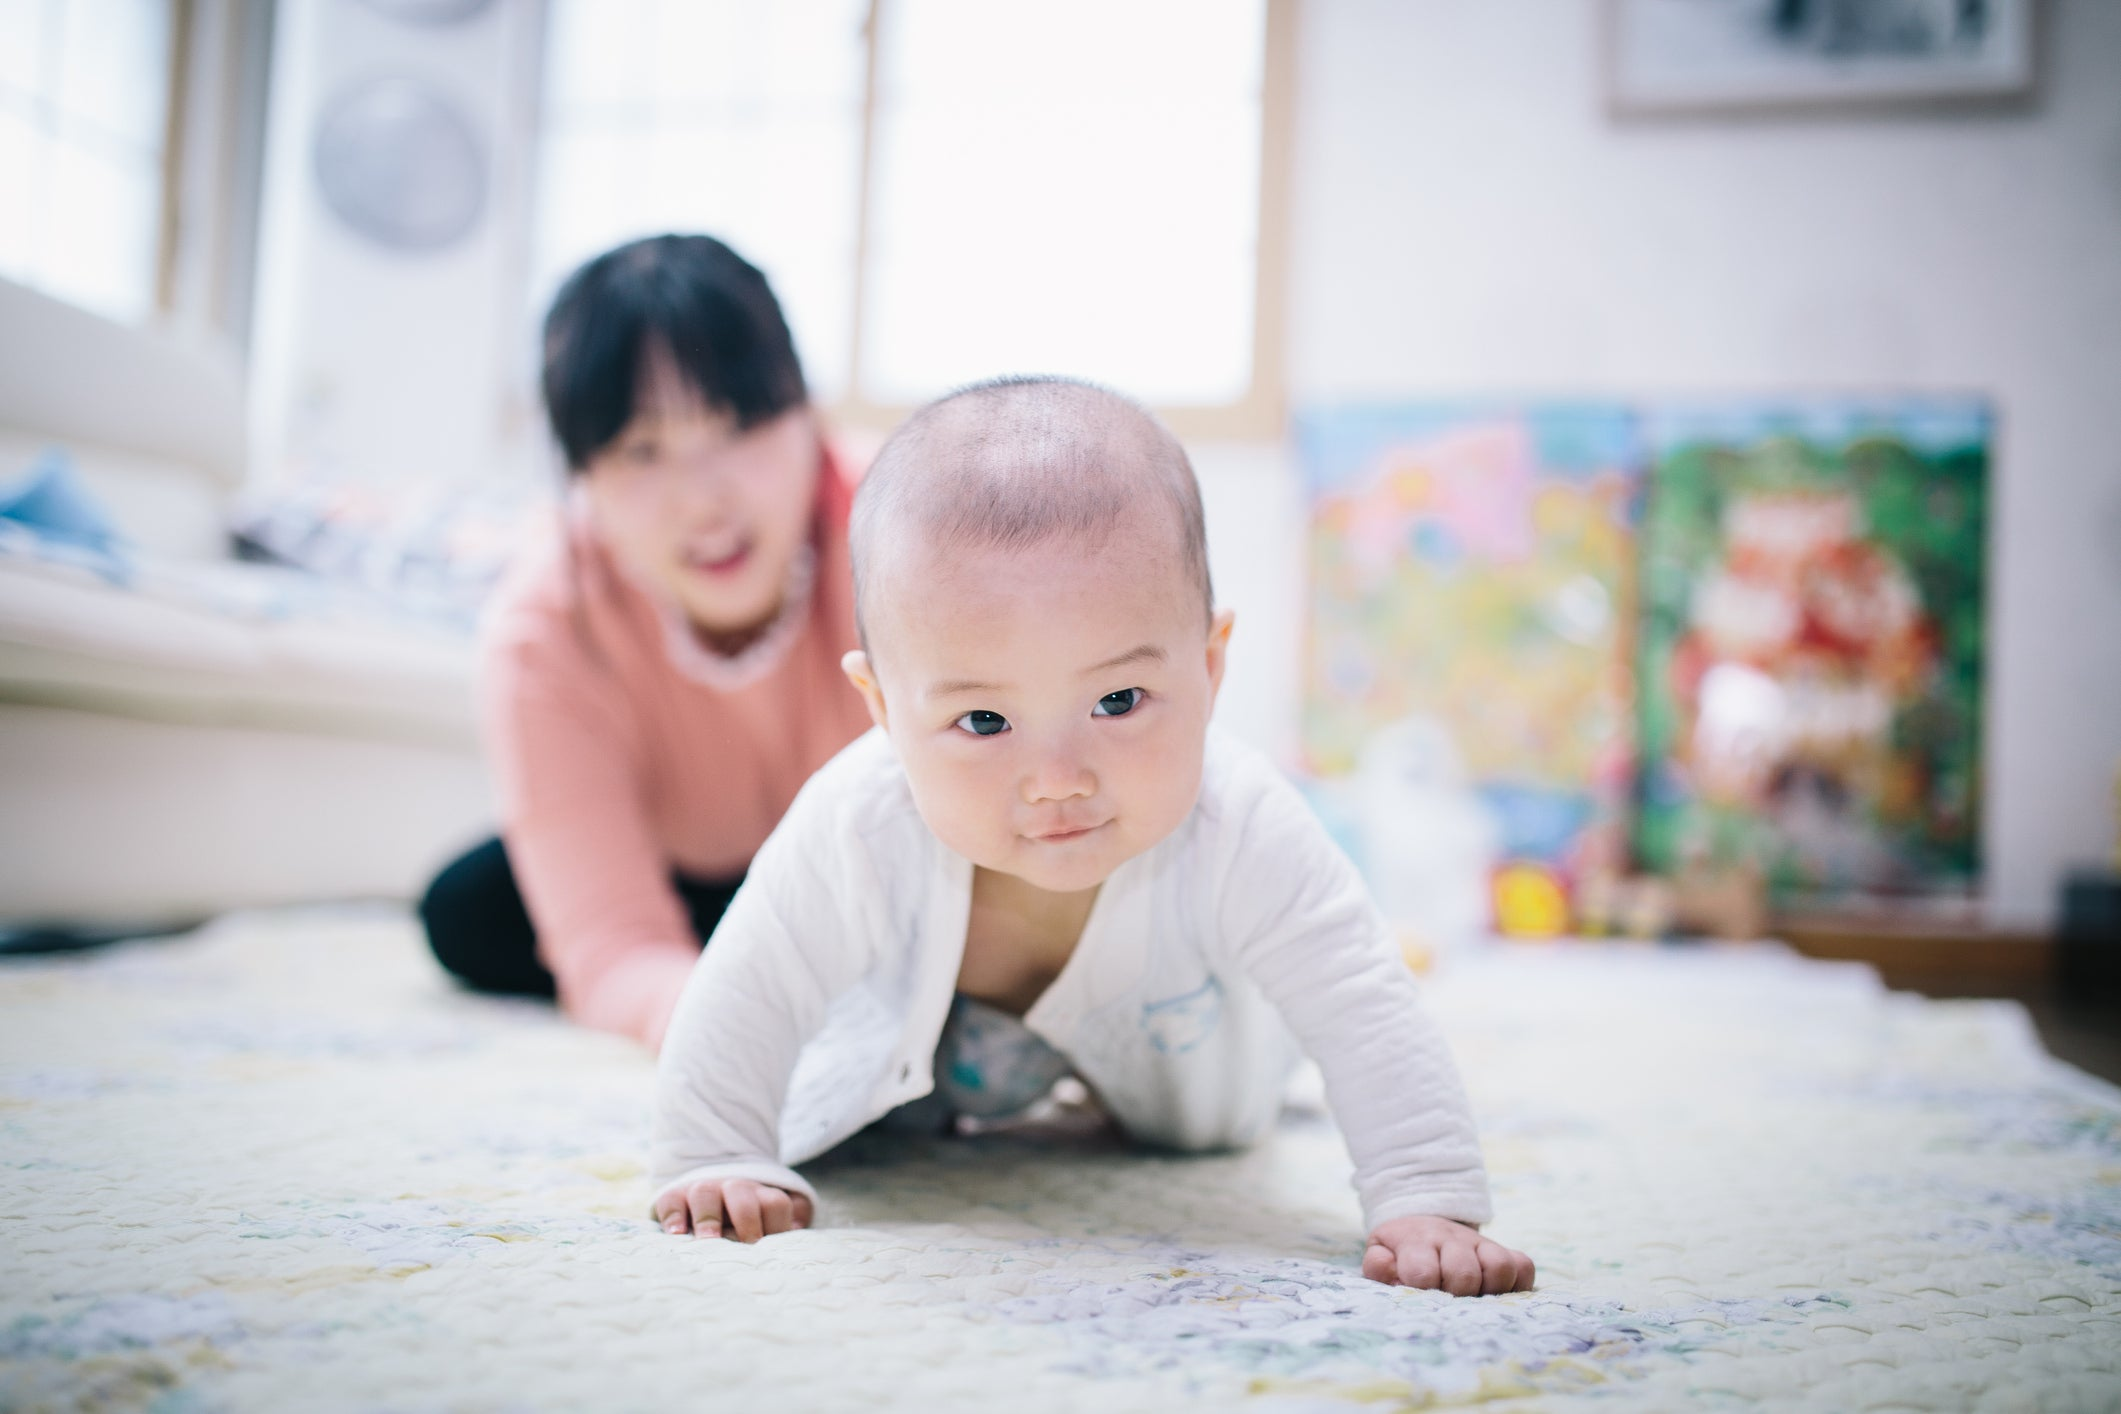 7 Spots You May Have Missed While Baby-Proofing image